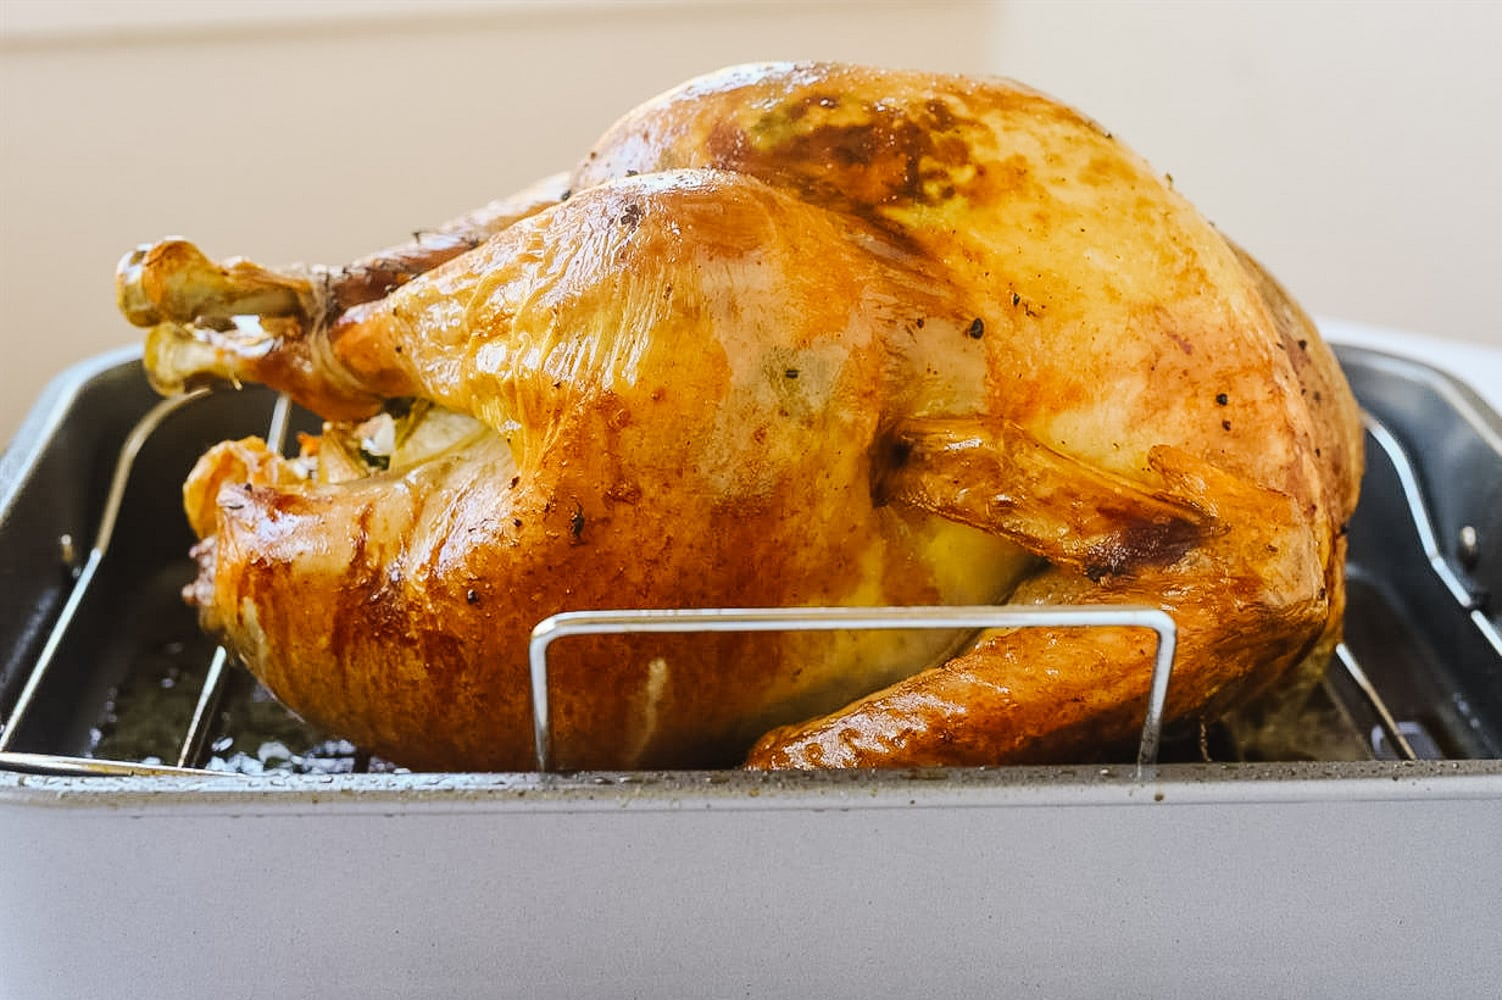 roasted turkey in a roasting pan